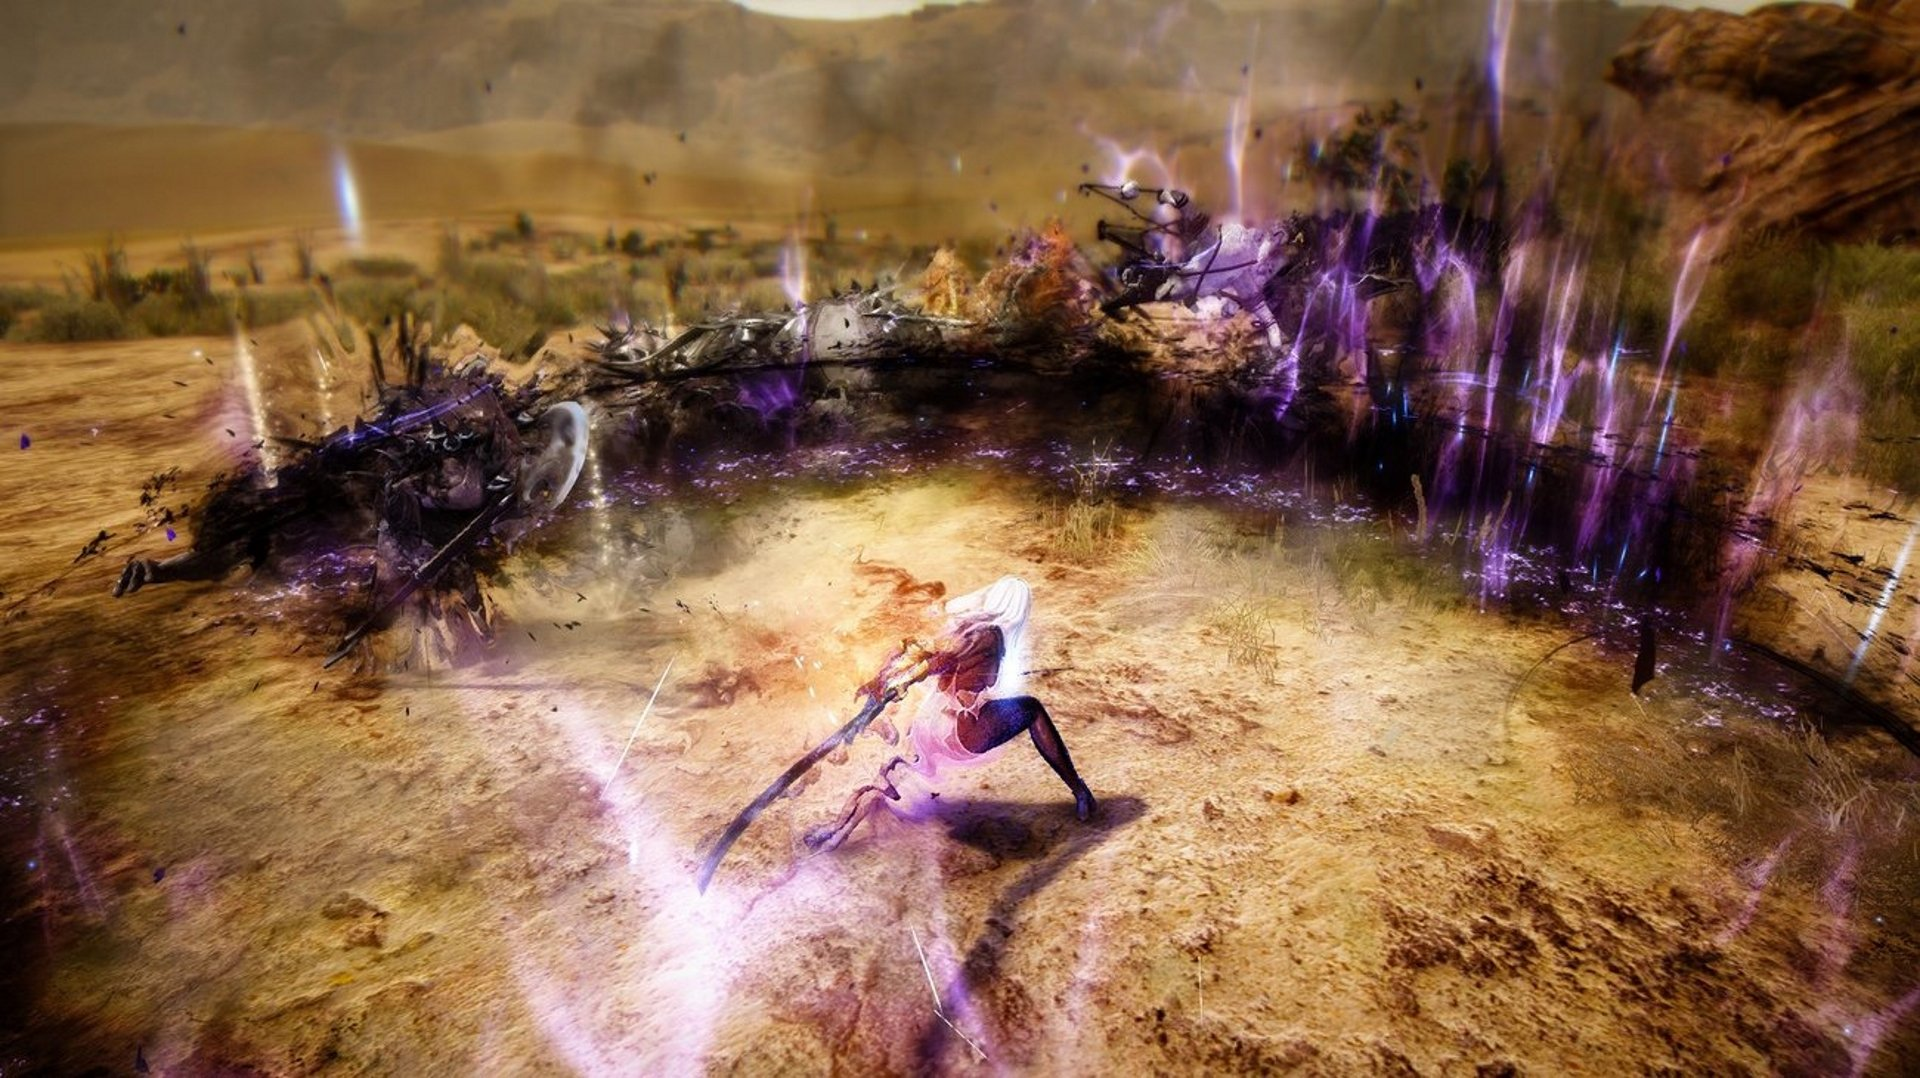 Popular MMORPG Black Desert is coming to PS4 this year